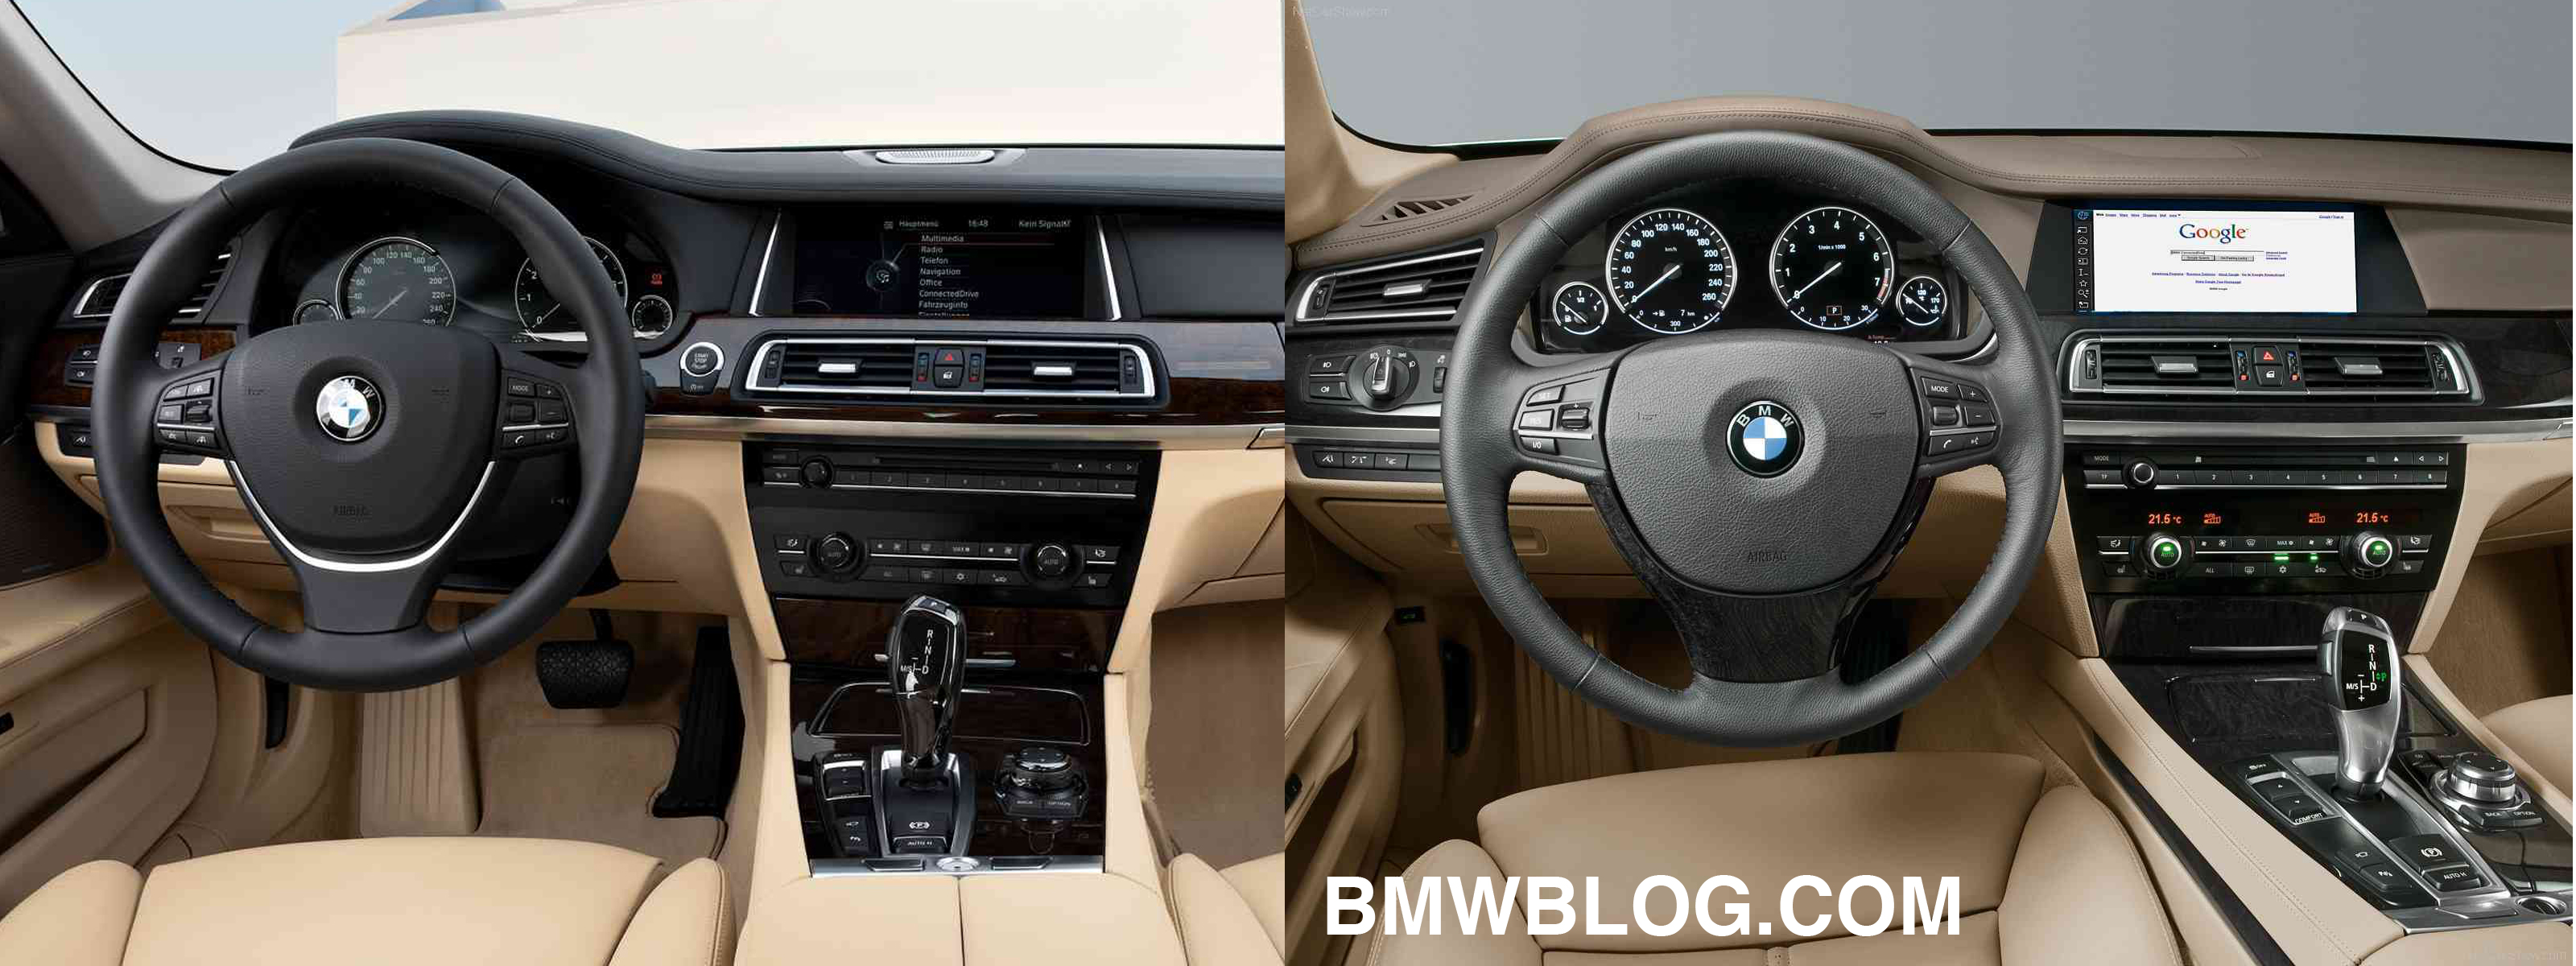 Photo Comparison: New BMW 7 Series Facelift vs. Pre-Facelift 7 Series